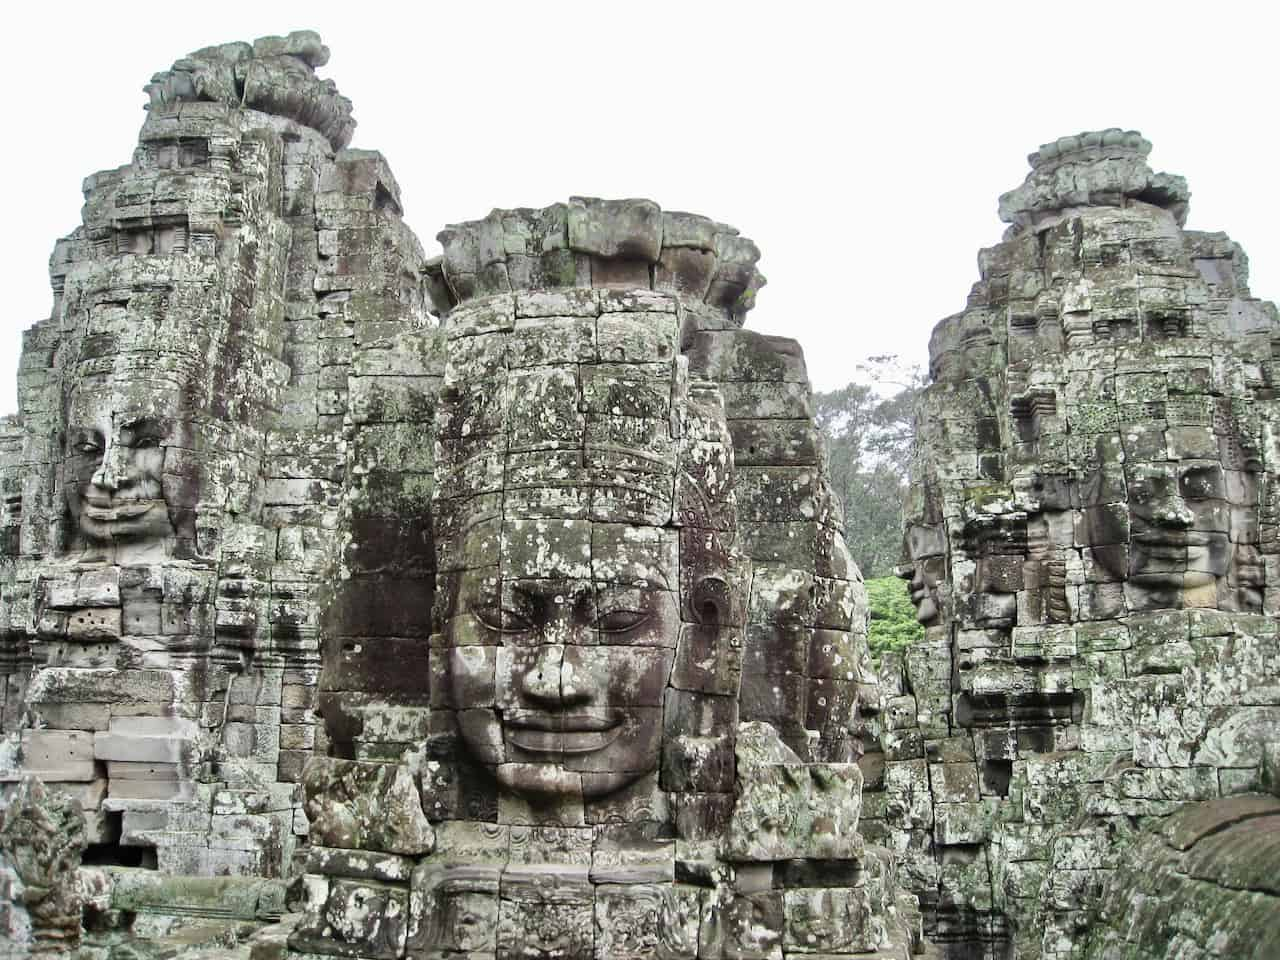 The wonders of Angkor Wat